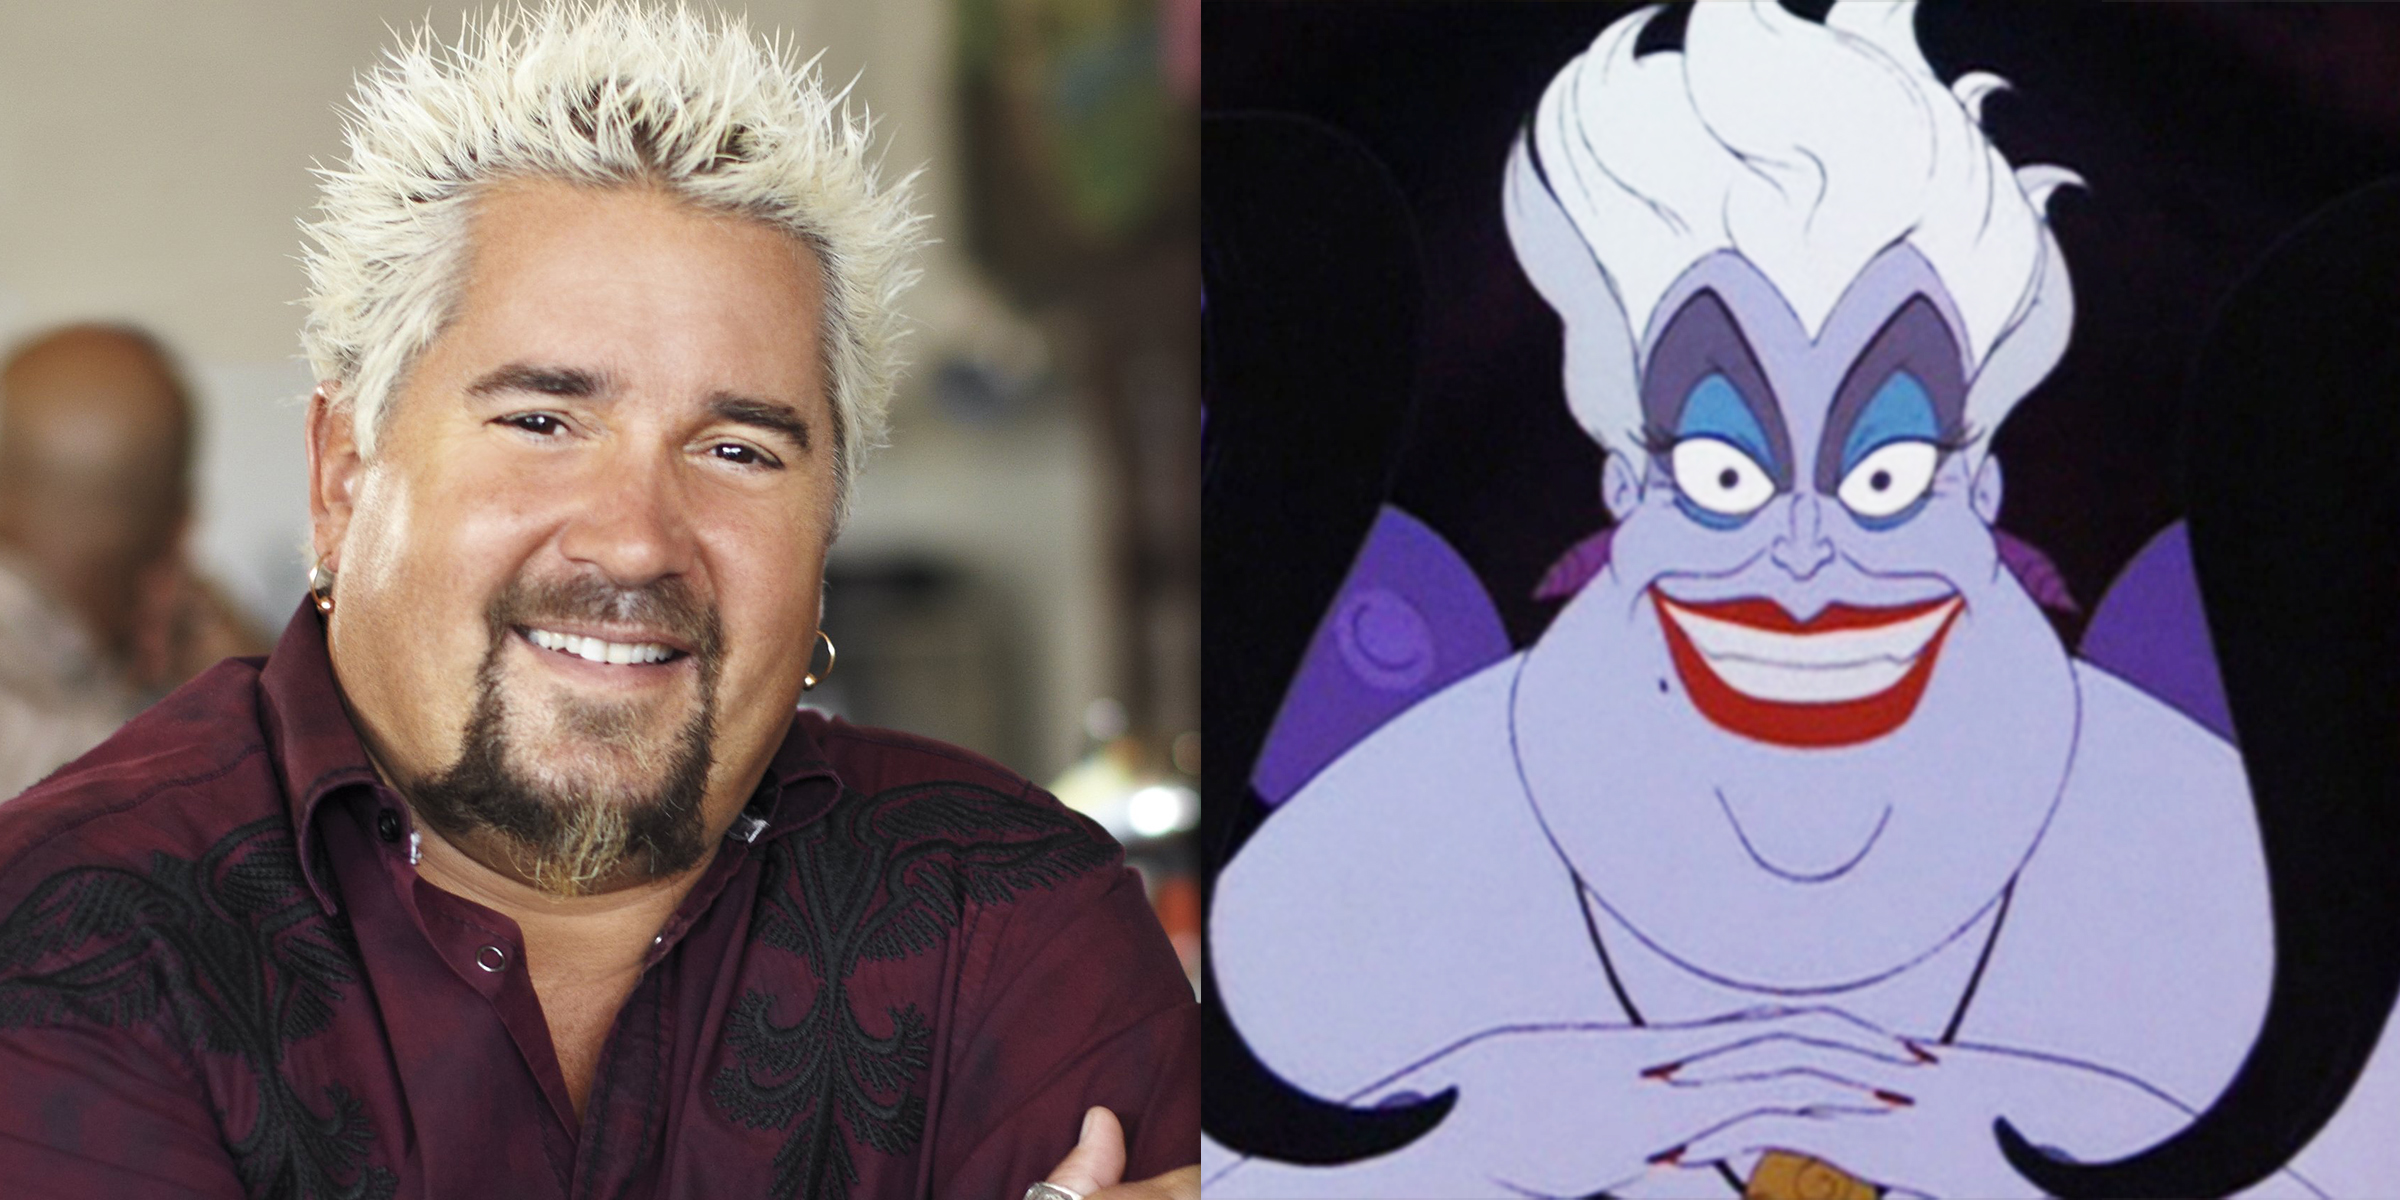 Guy Fieri Responds To Fans Who Want Him To Play Ursula In The Little Mermaid Remake